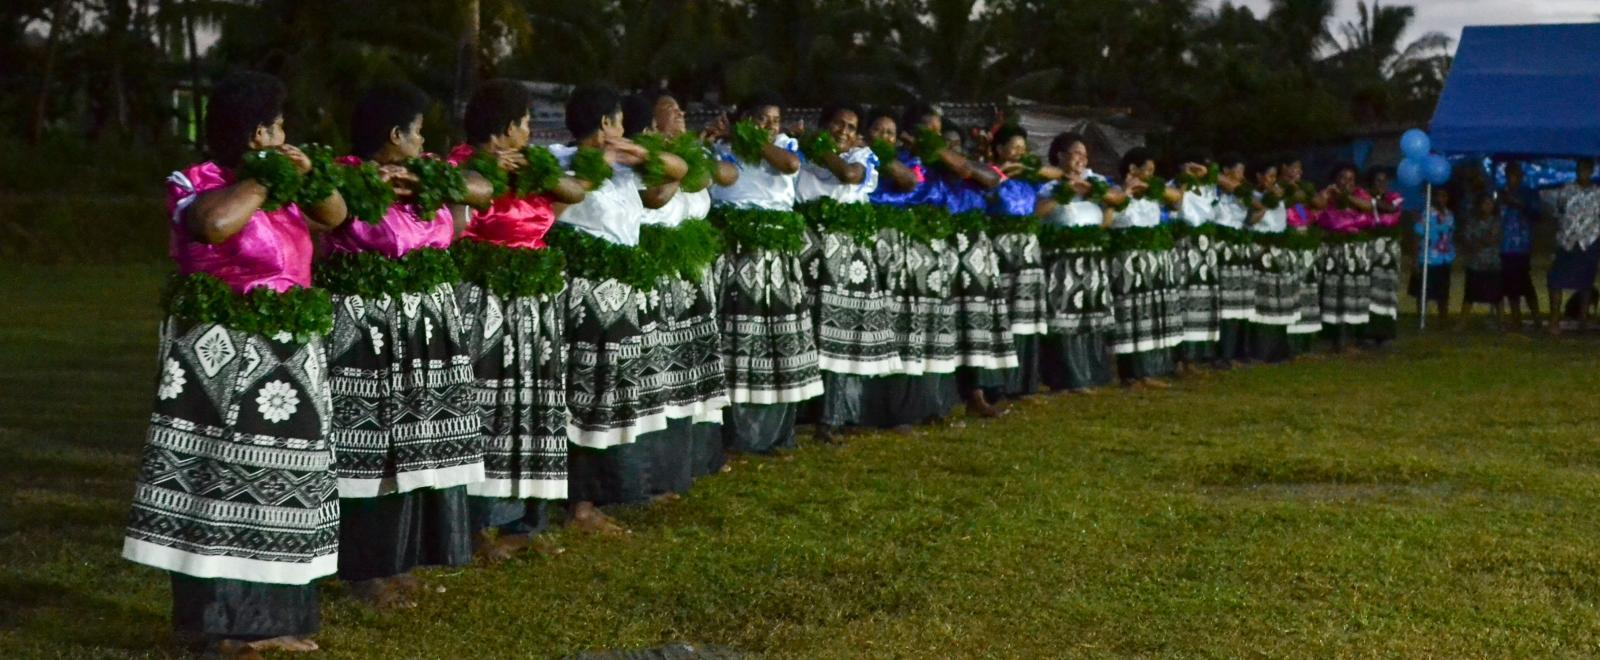 Local women in Fiji perform a ceremony for the opening of a Community Centre at a placement lead by Projects Abroad Staff.